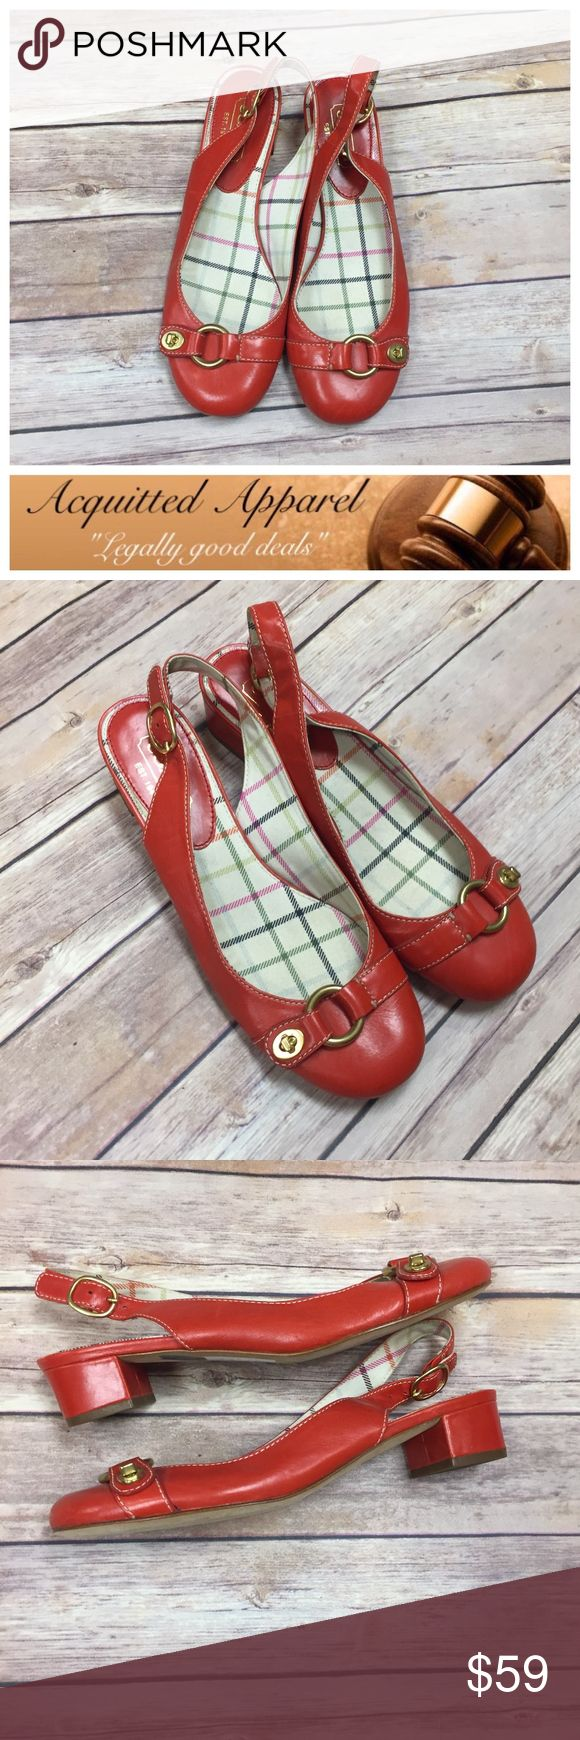 """(COACH) Leather Slip On Short Heel Sling Back Shoe Red Geranium color with gold hard wear. Excellent almost like new condition. Retailed for $178. No signs of wear. Perfect for spring and summer. Simple 1"""" heel. Size 8 B. Coach Shoes"""